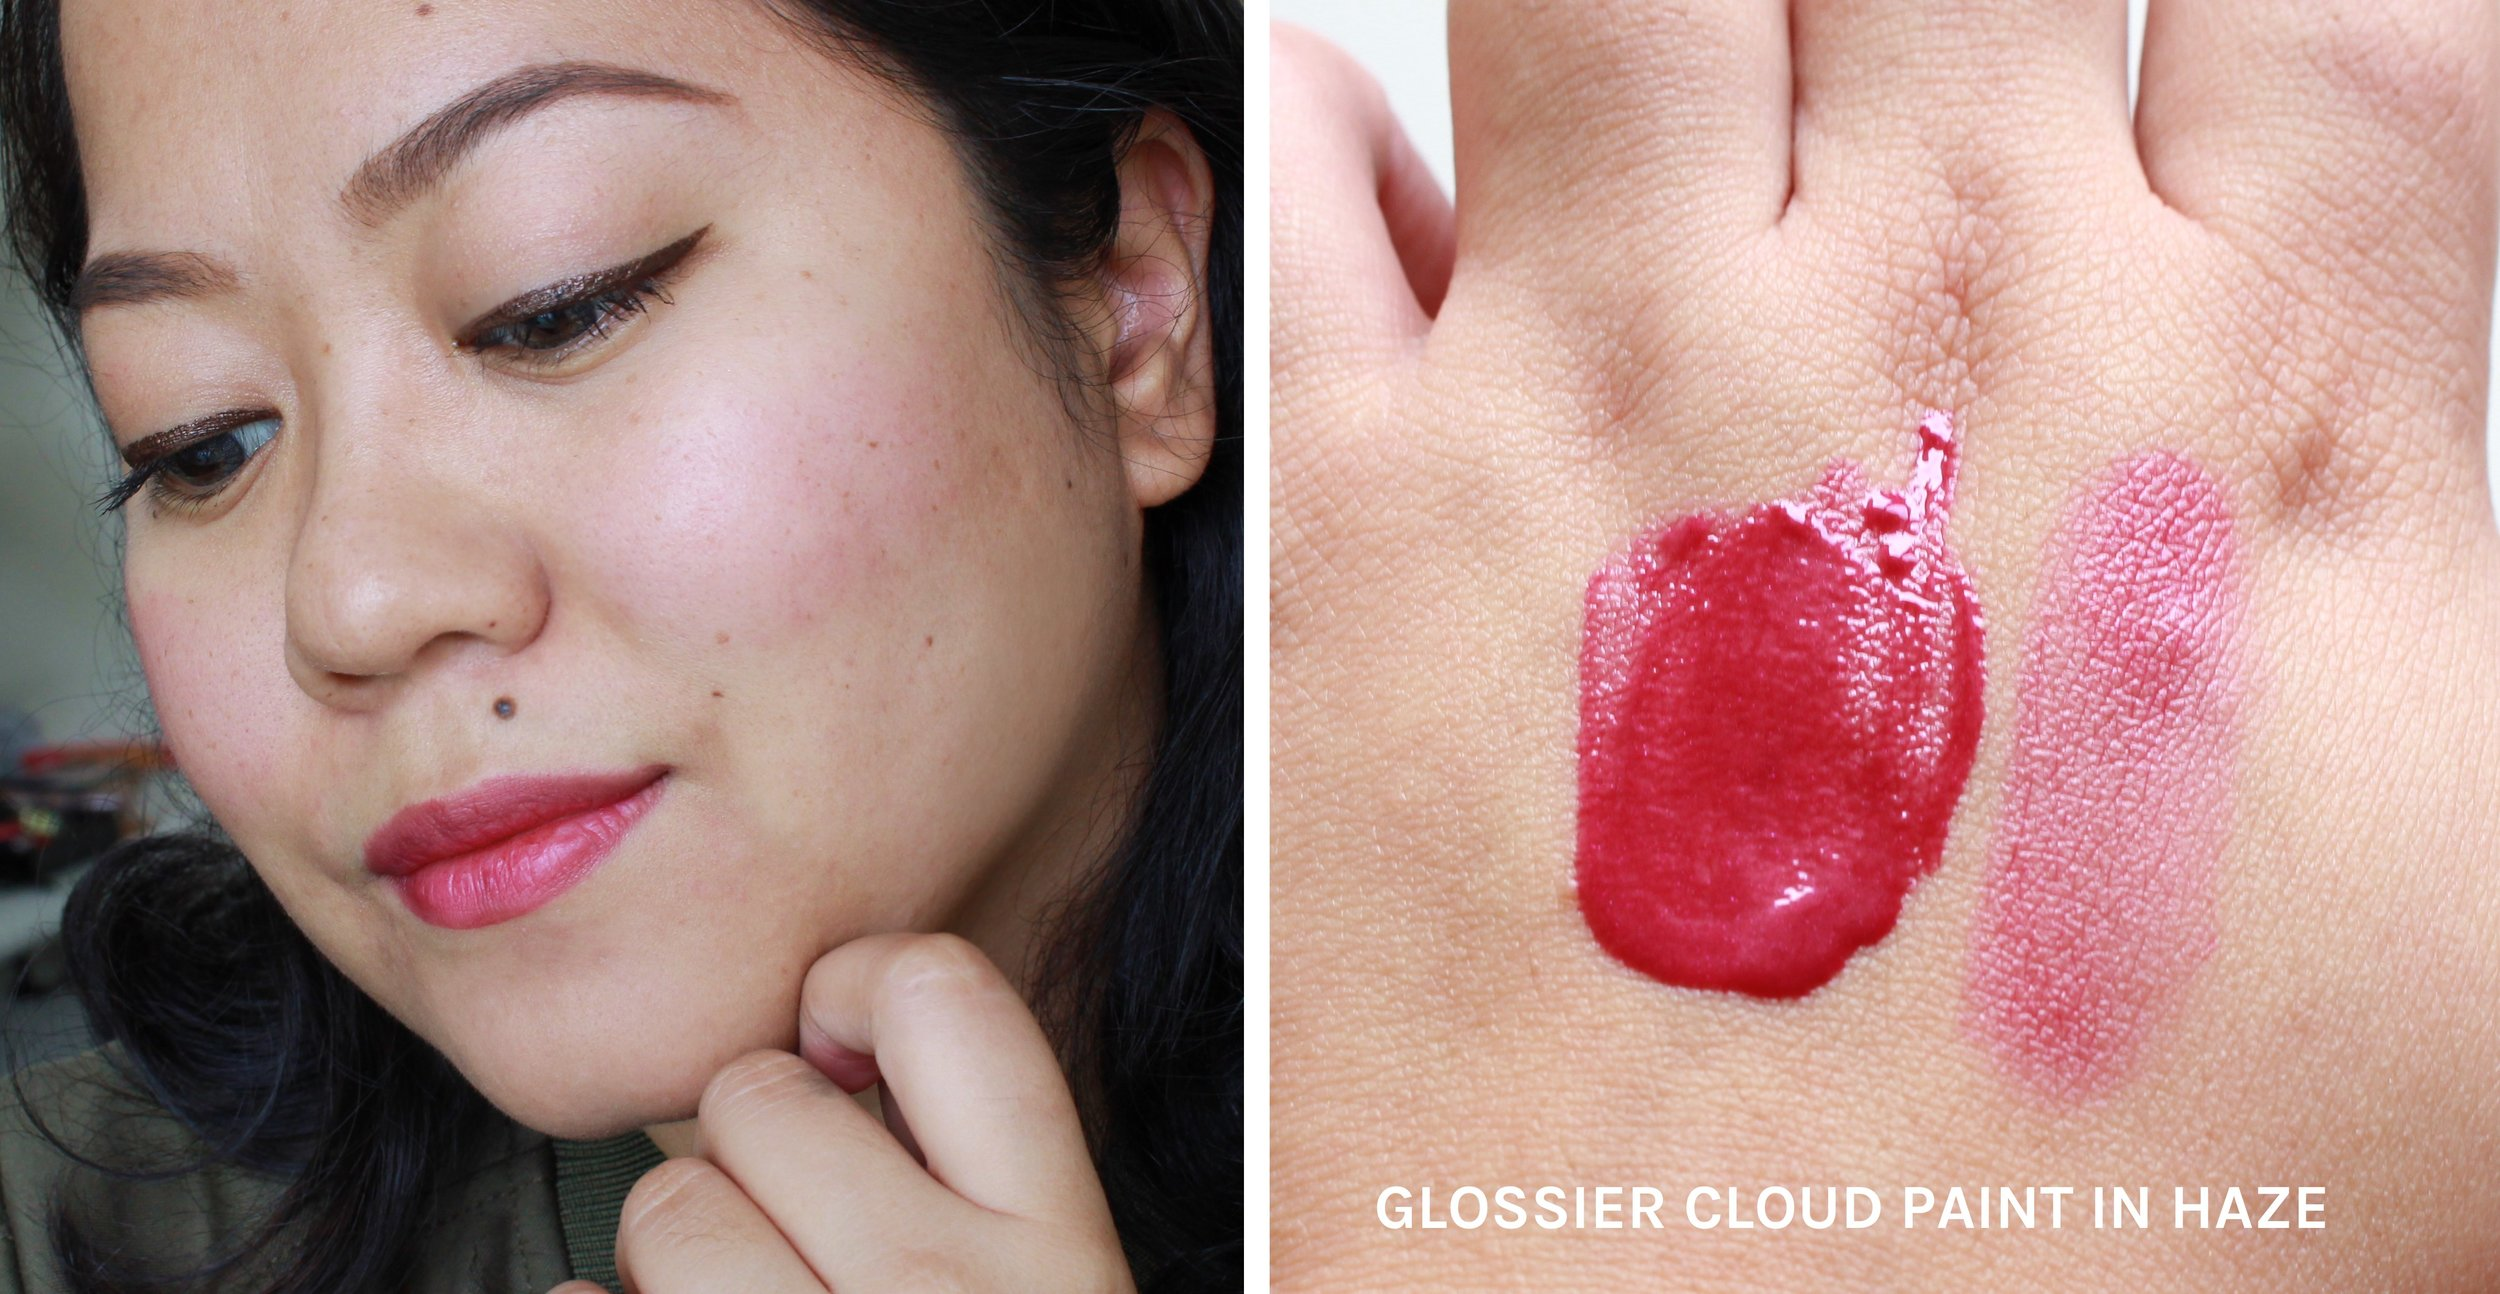 The Glossier Cloud Paint in Haze on bare skin. Haze is a juicy berry red shade.